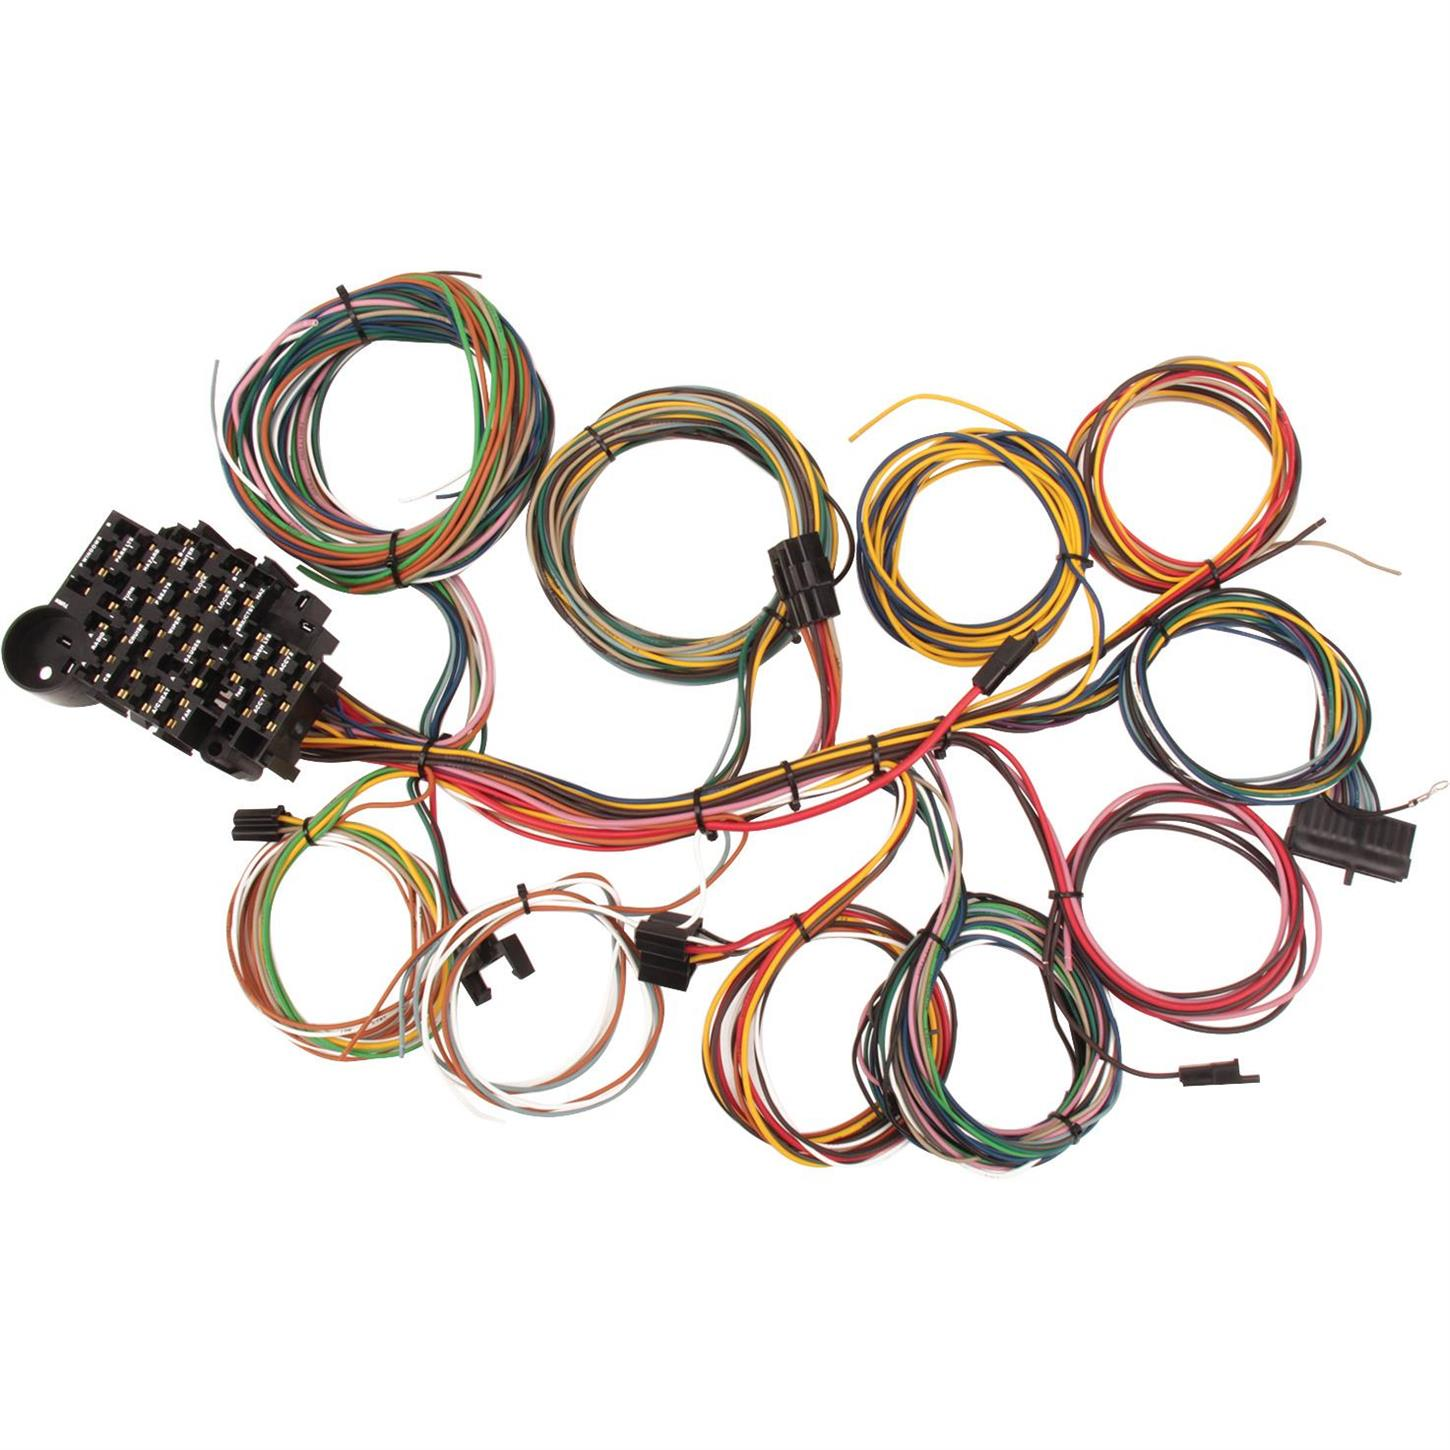 91064022_L1450_4a5a9e43 cdd2 4b2c 9c68 457f296054bd selecting a wiring harness for your street rod  at nearapp.co